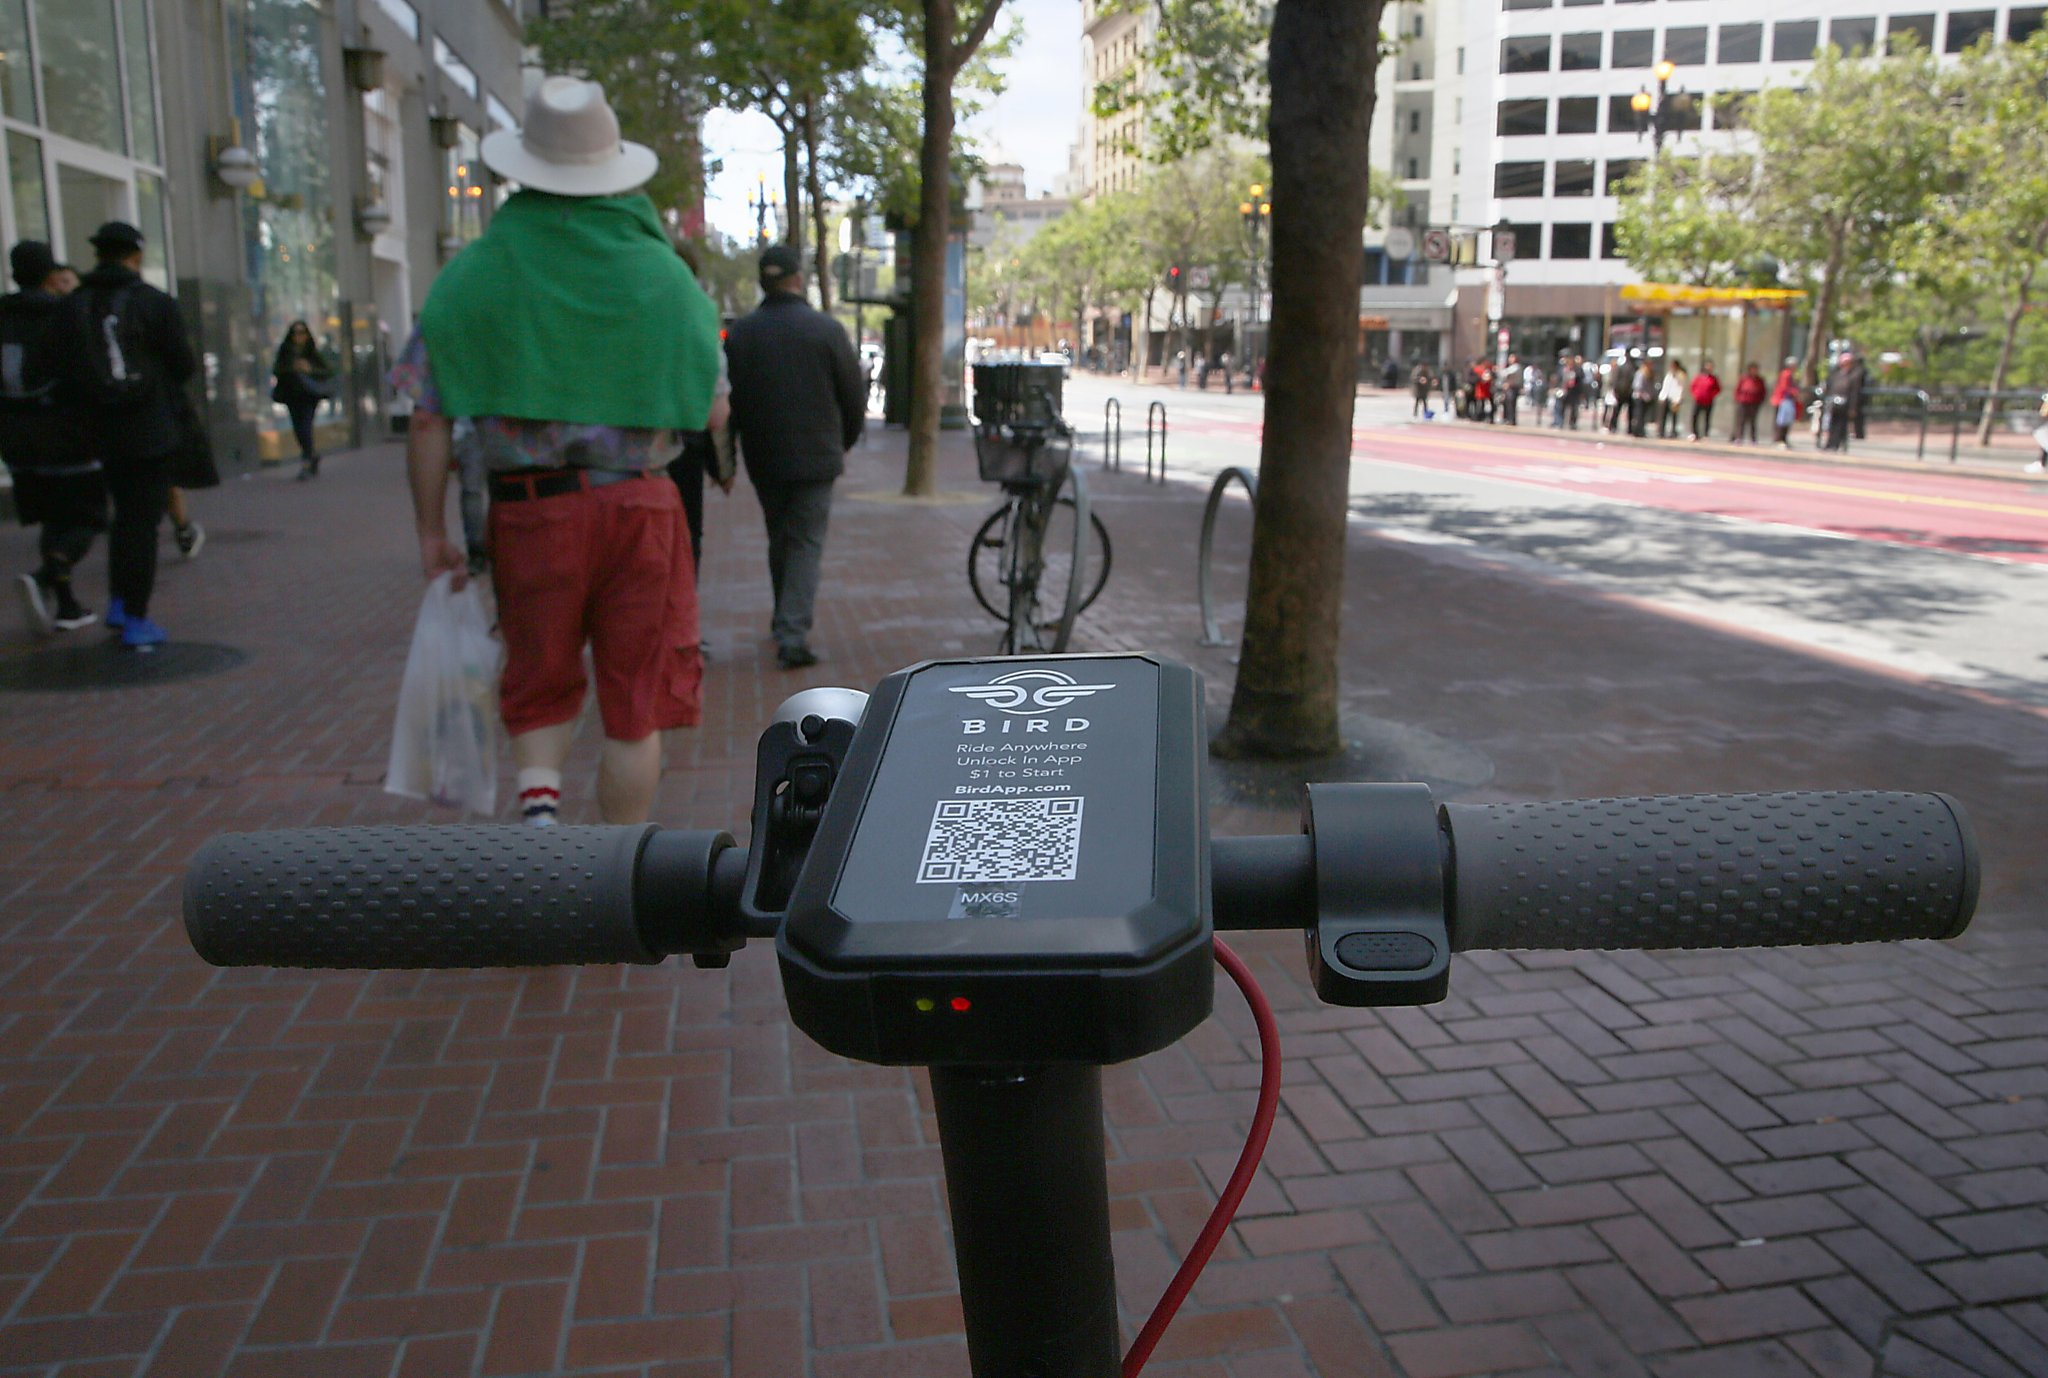 SF to transportation startups: Play nice, get permits, share data